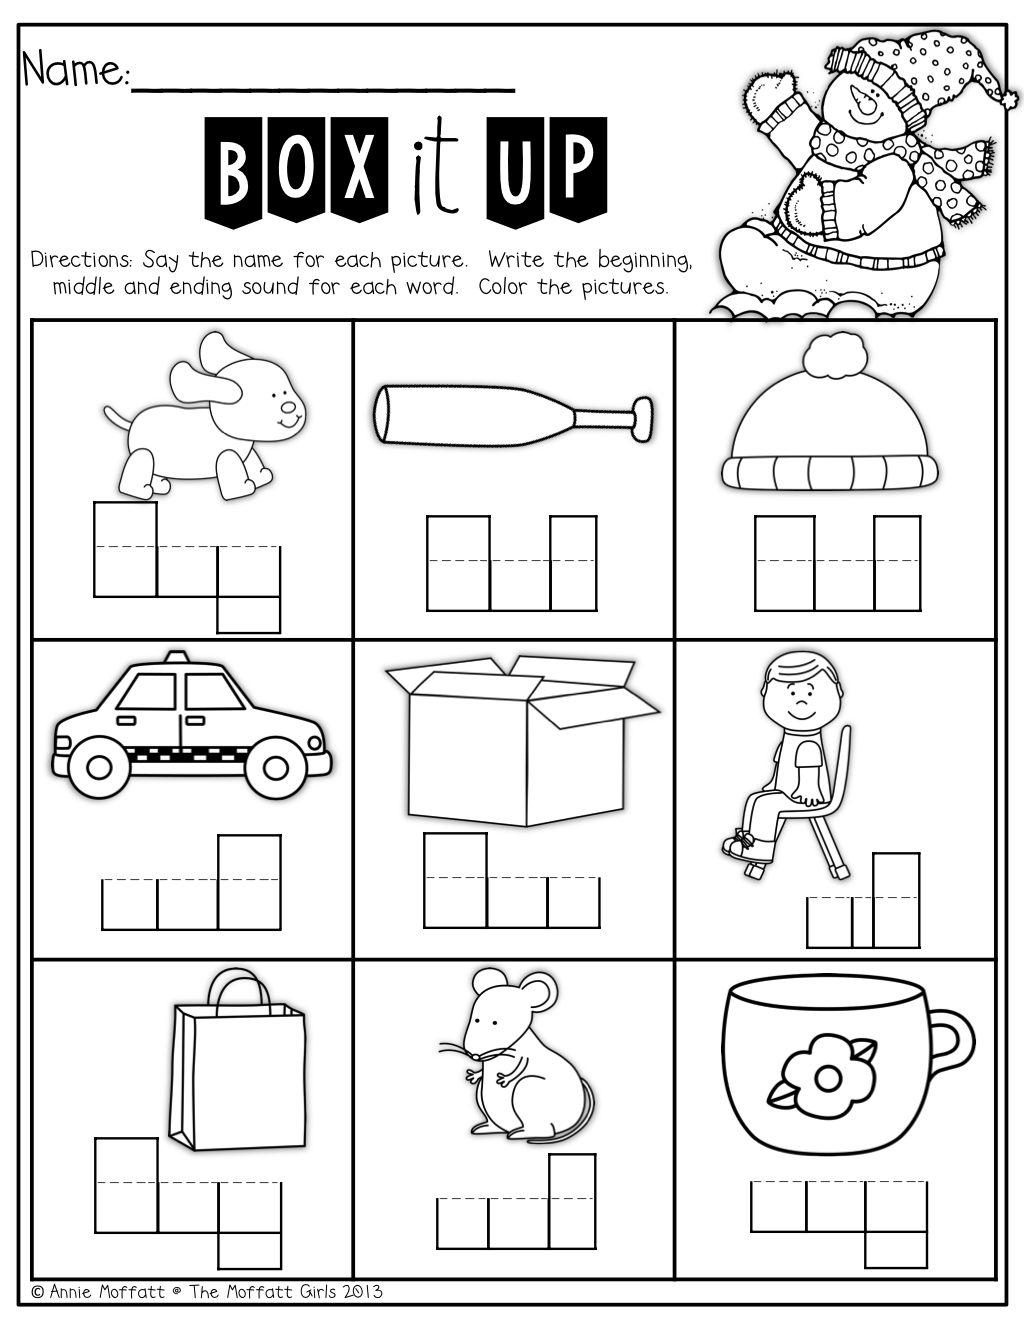 Box Up The Words Soundsound! Perfect For Kids Who Are